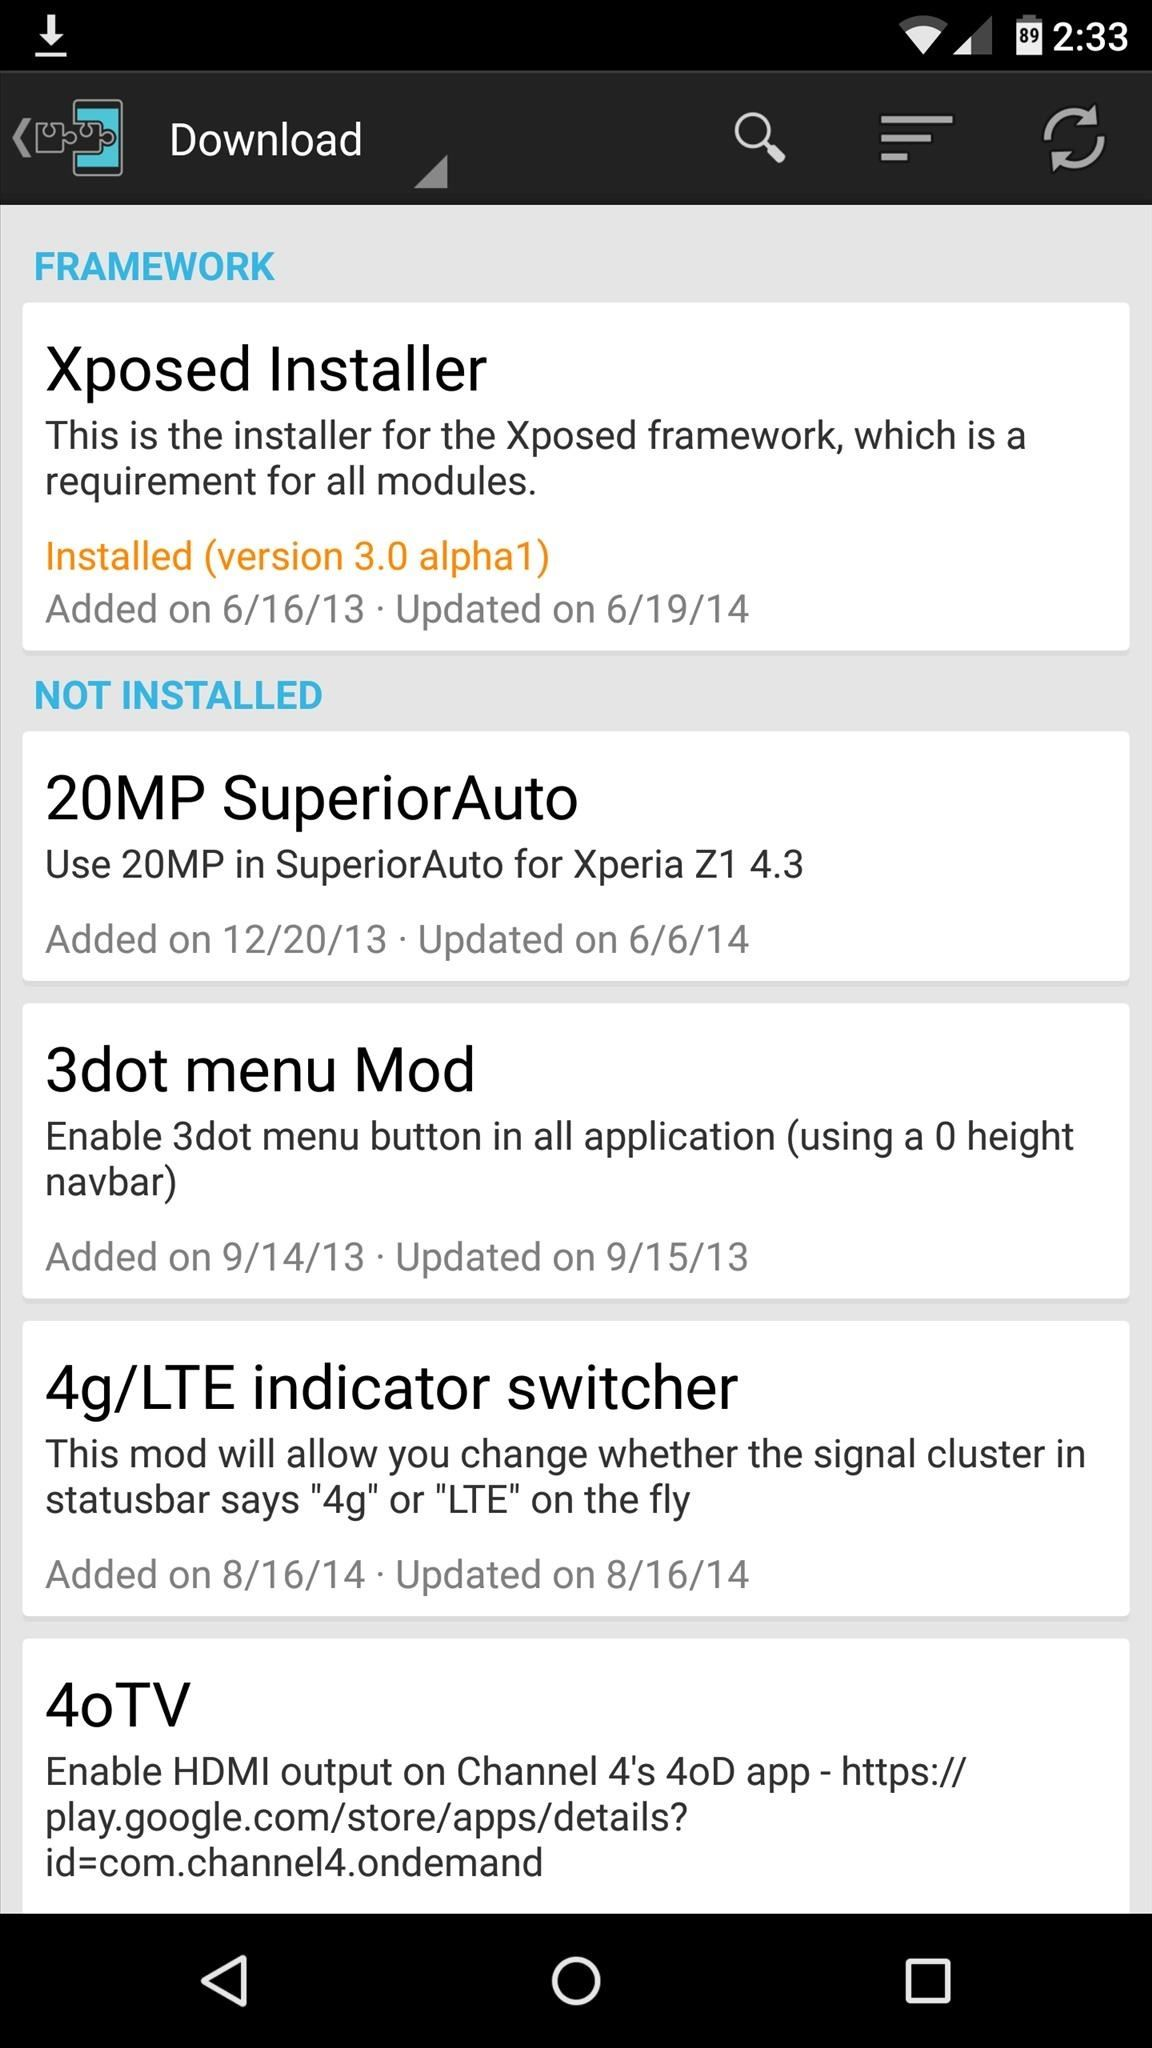 How to Install the Xposed Framework on Android Lollipop Devices